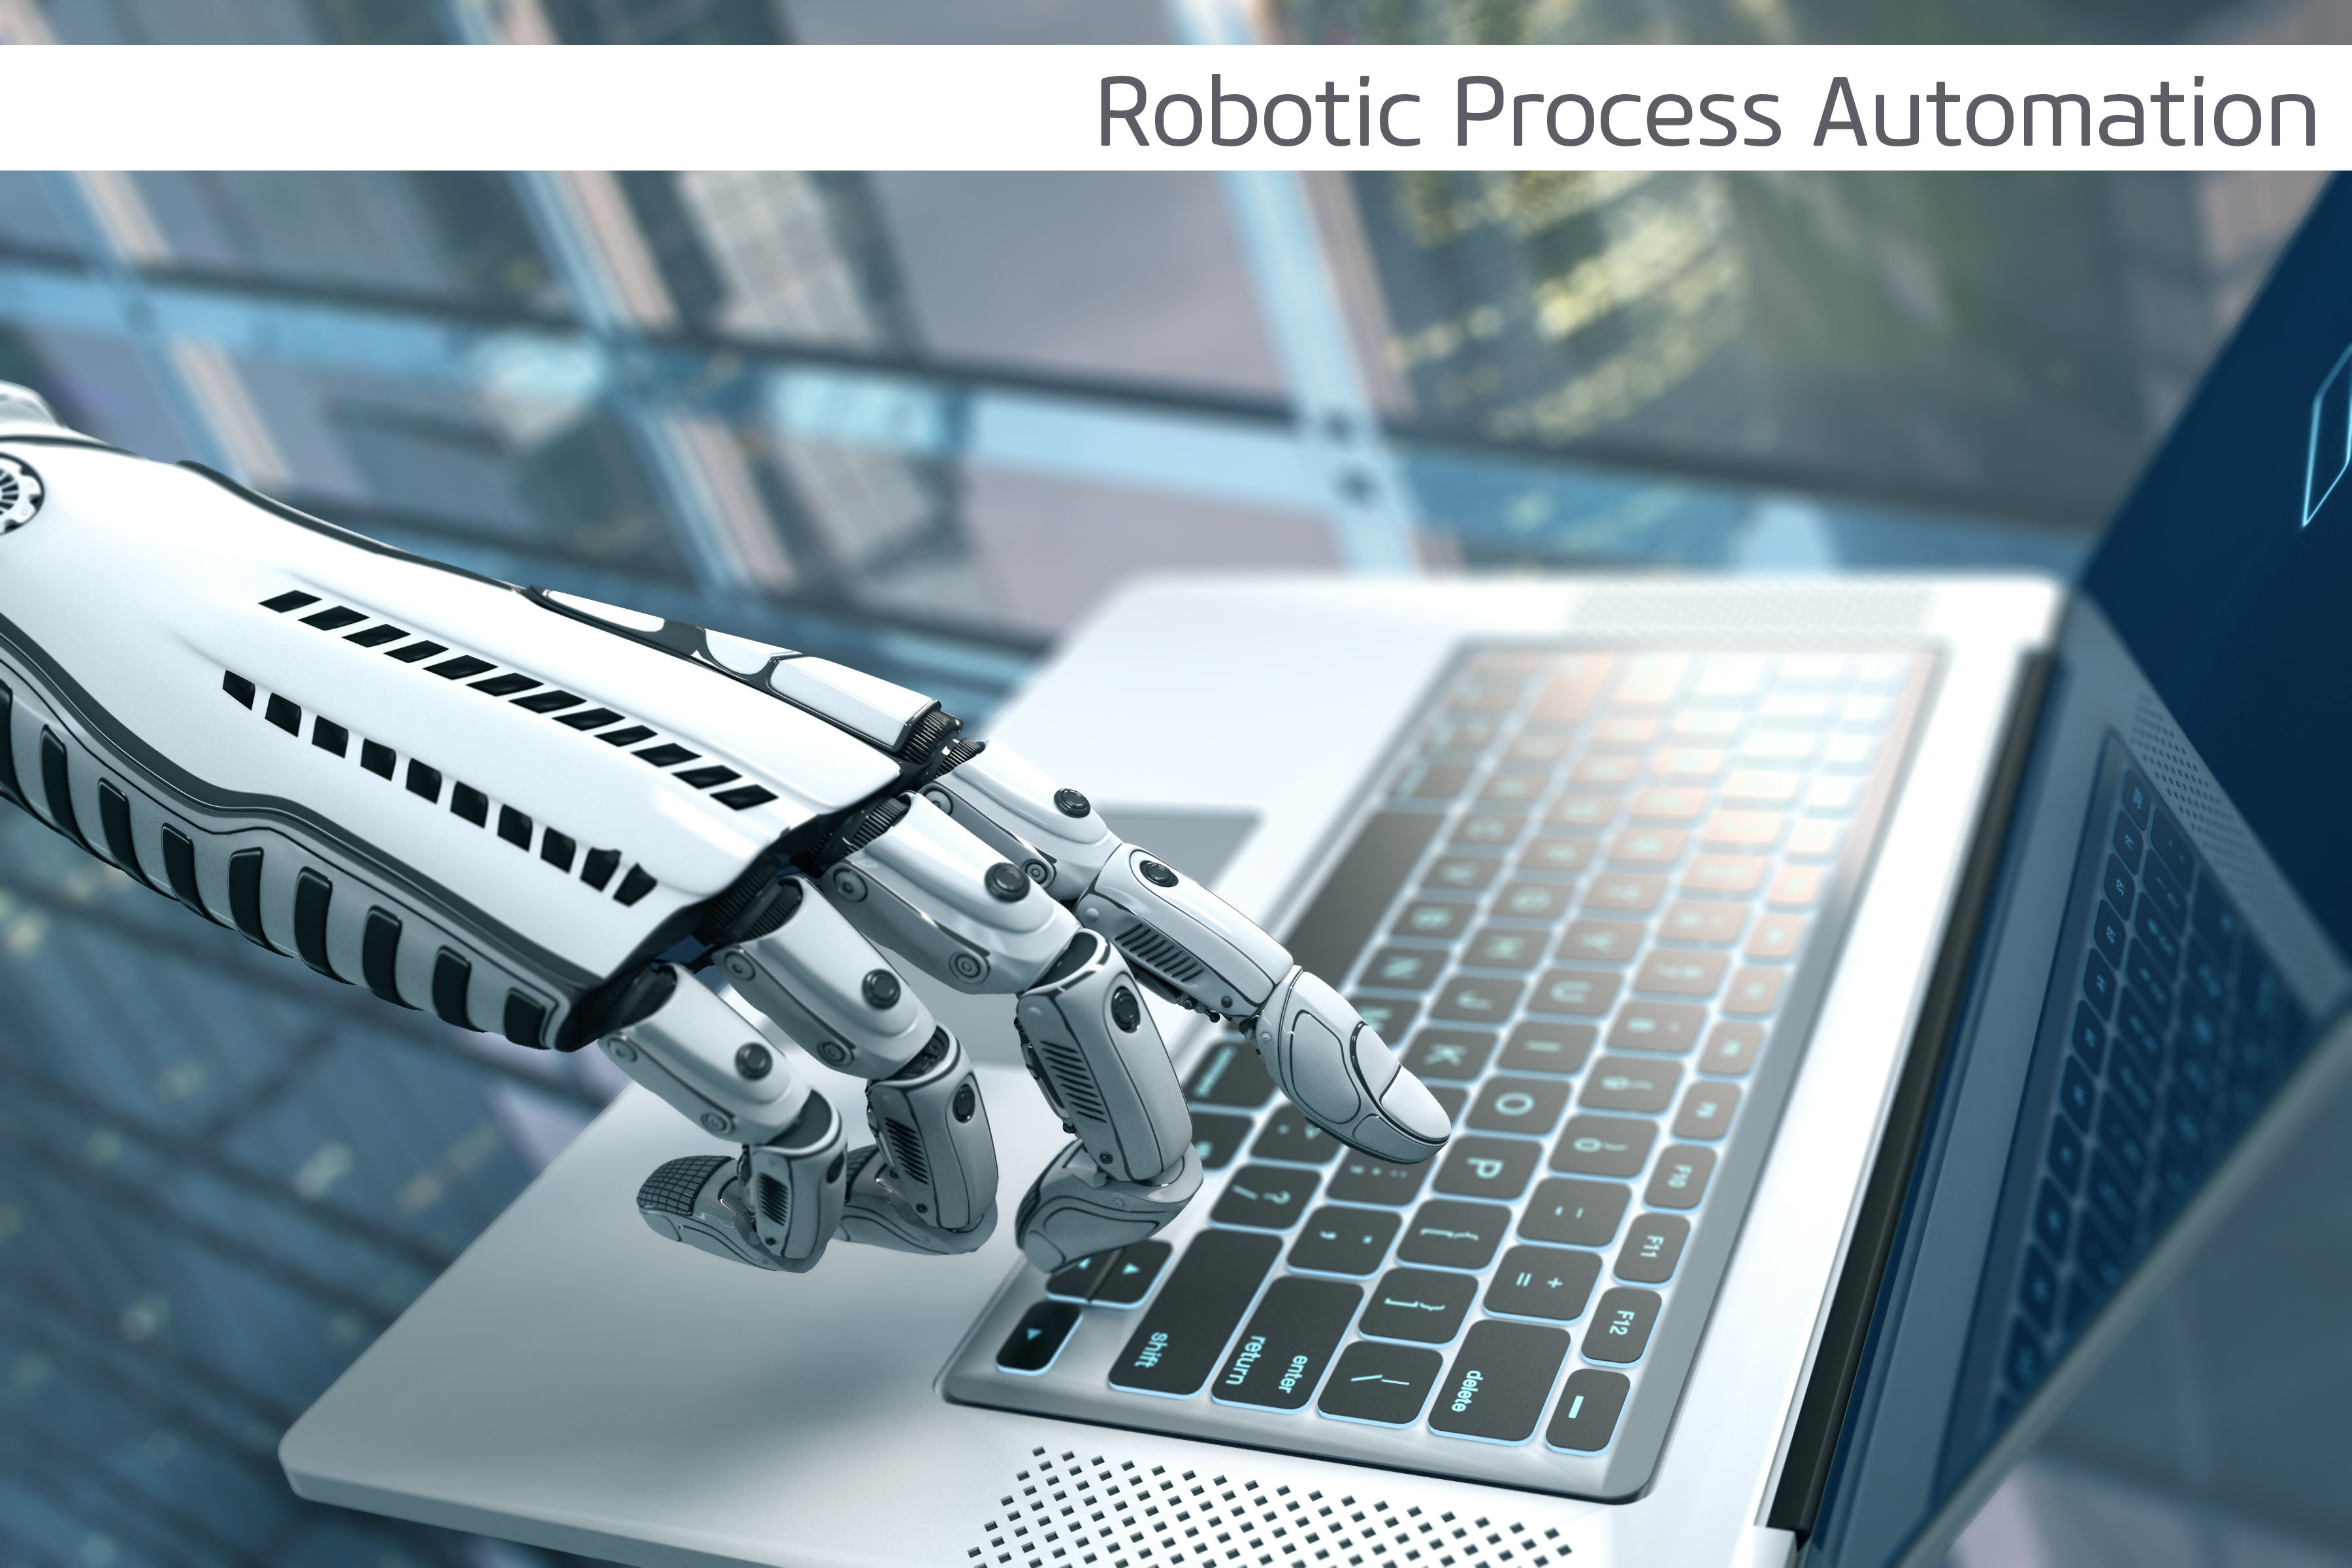 RoboticProcessAutomation-OnlineBusinessSystems